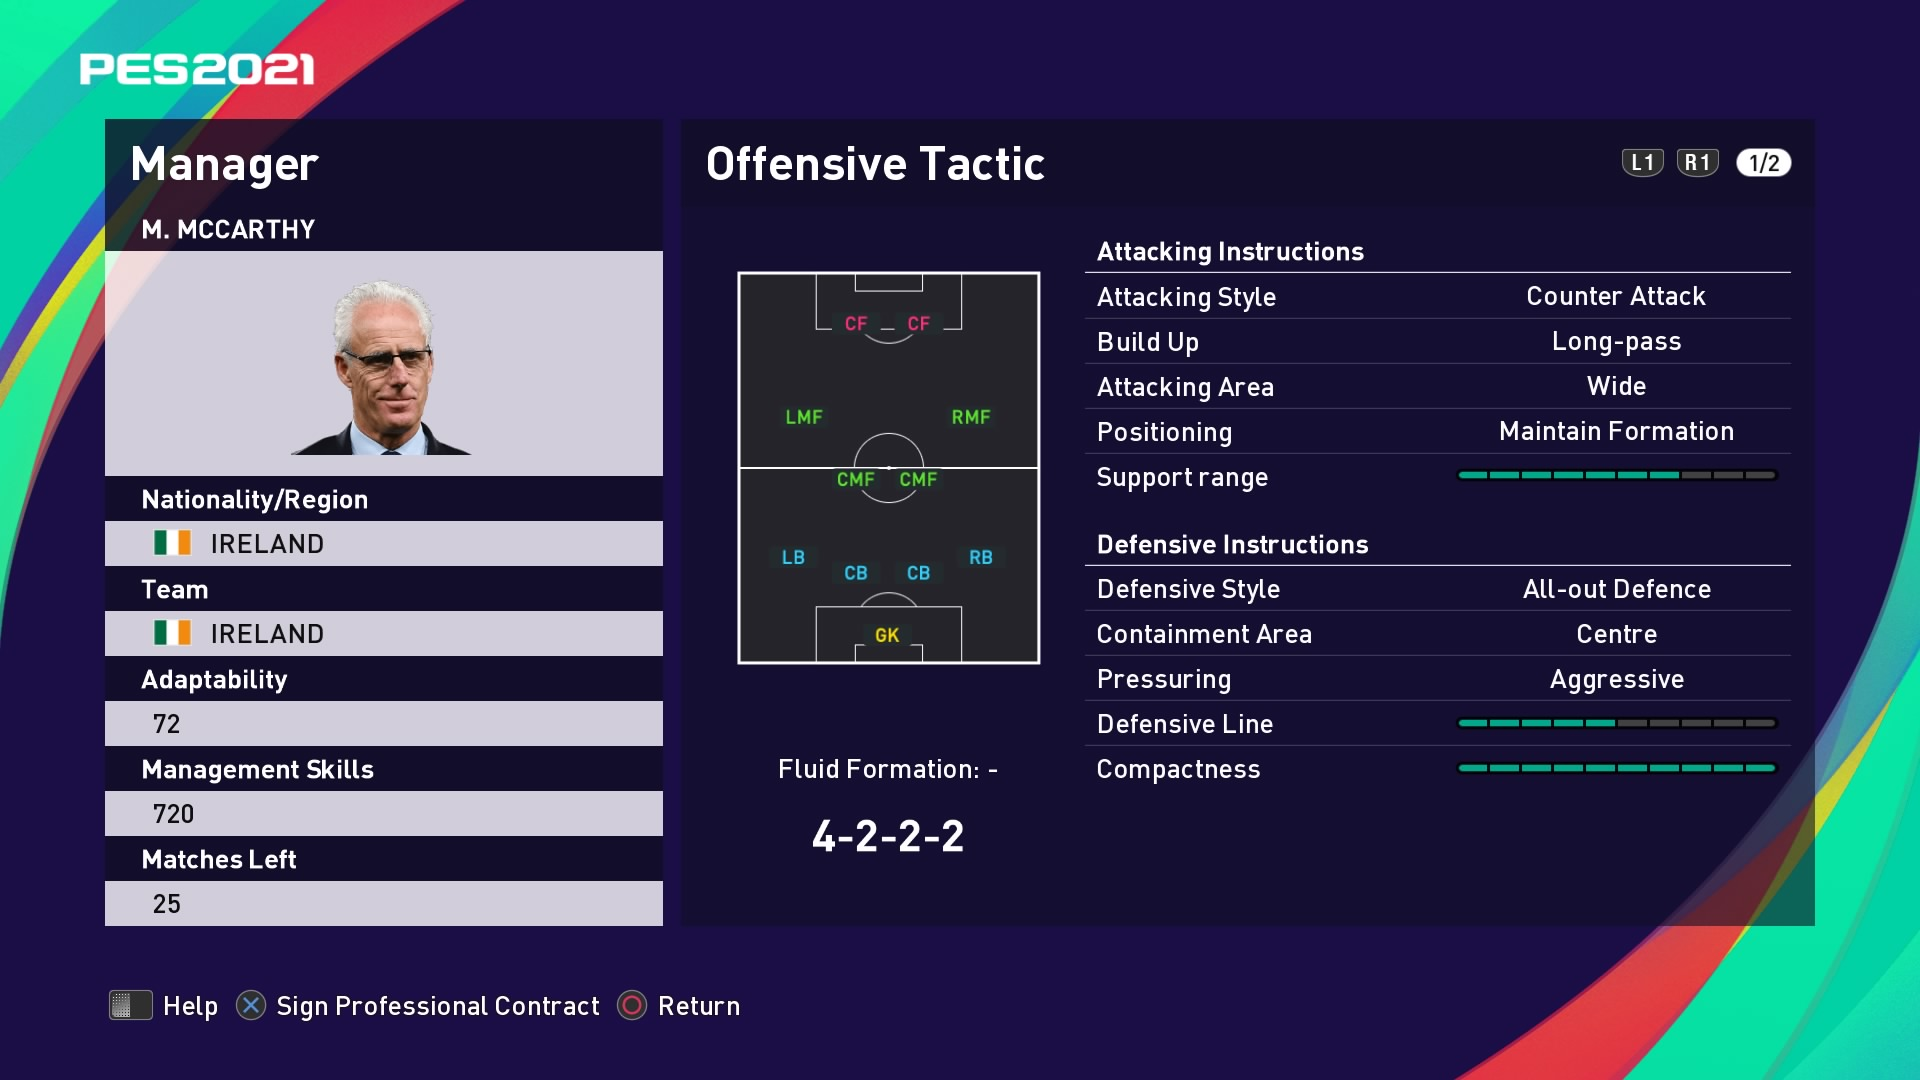 M. McCarthy (Mick McCarthy) Offensive Tactic in PES 2021 myClub